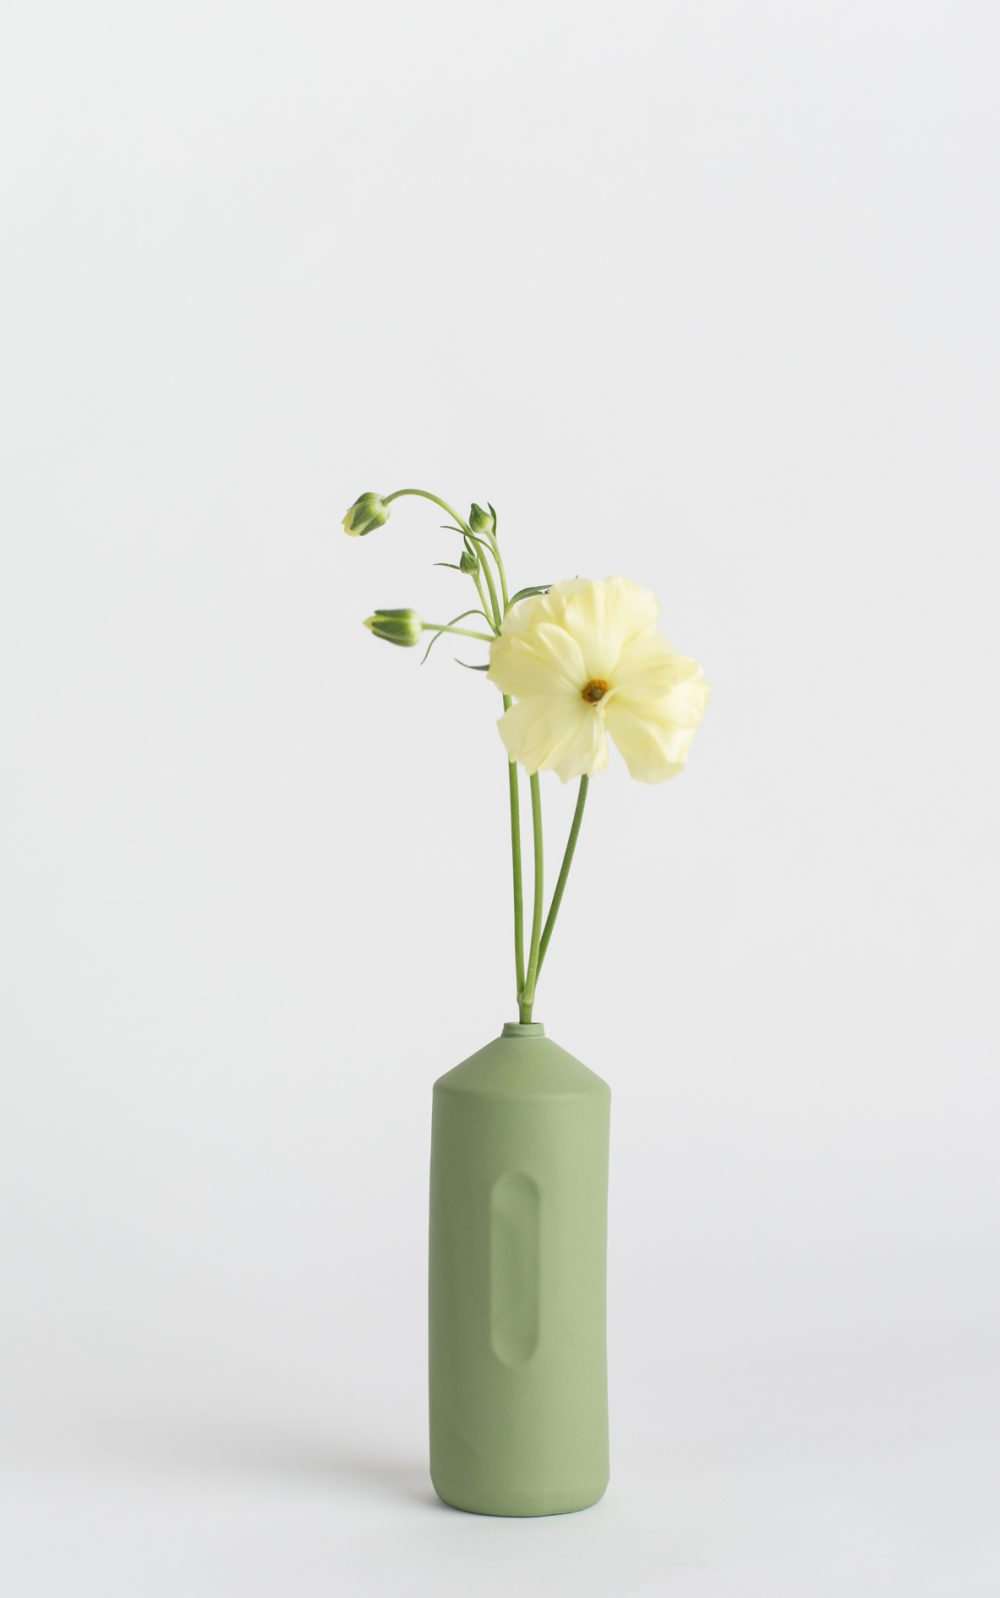 bottle vase #2 dark green with flower